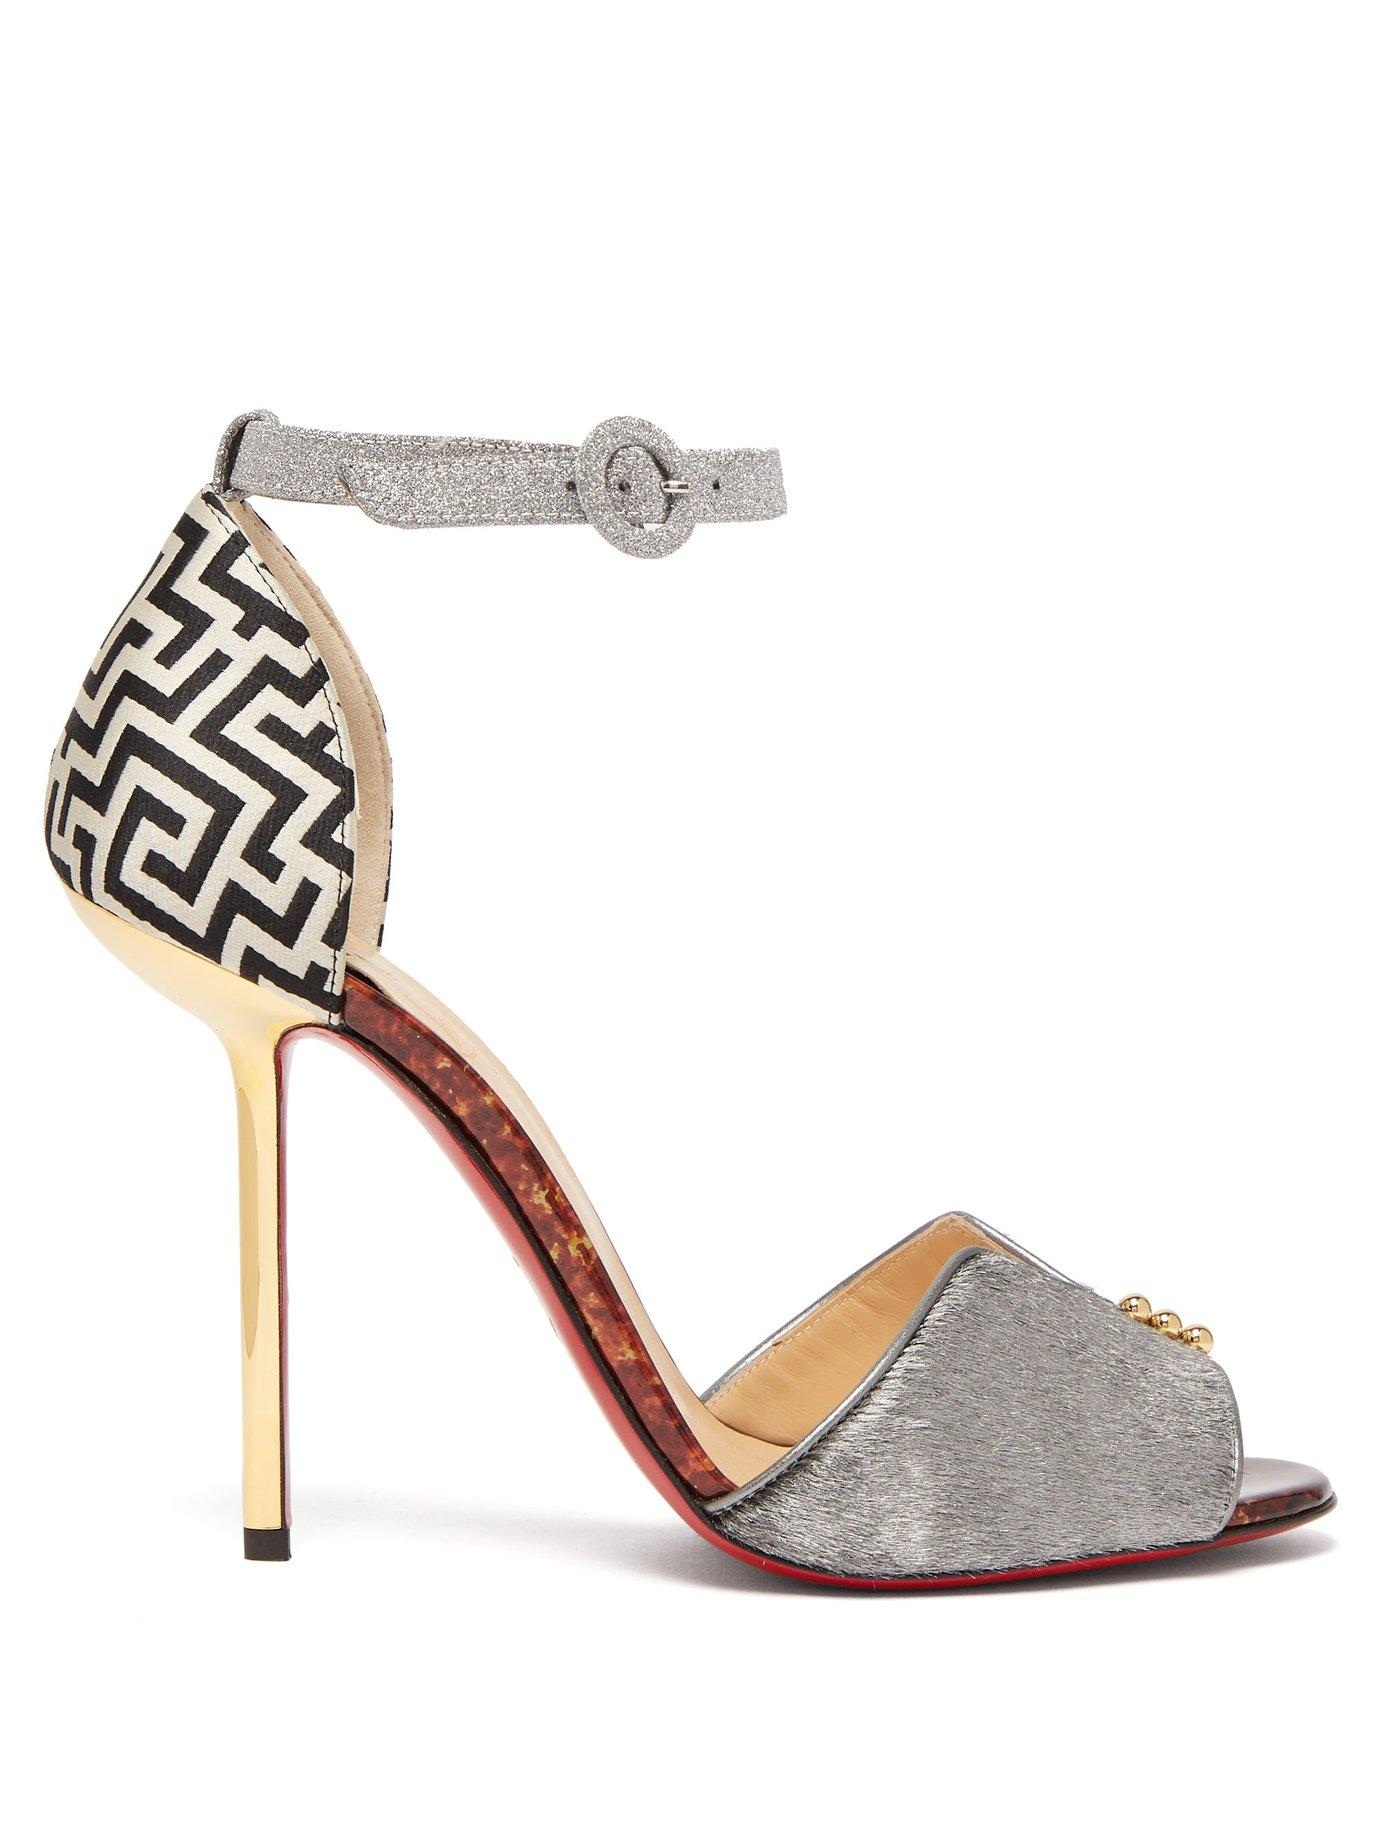 Christian Louboutin Notte Bella 100 Leather Sandals In Multi